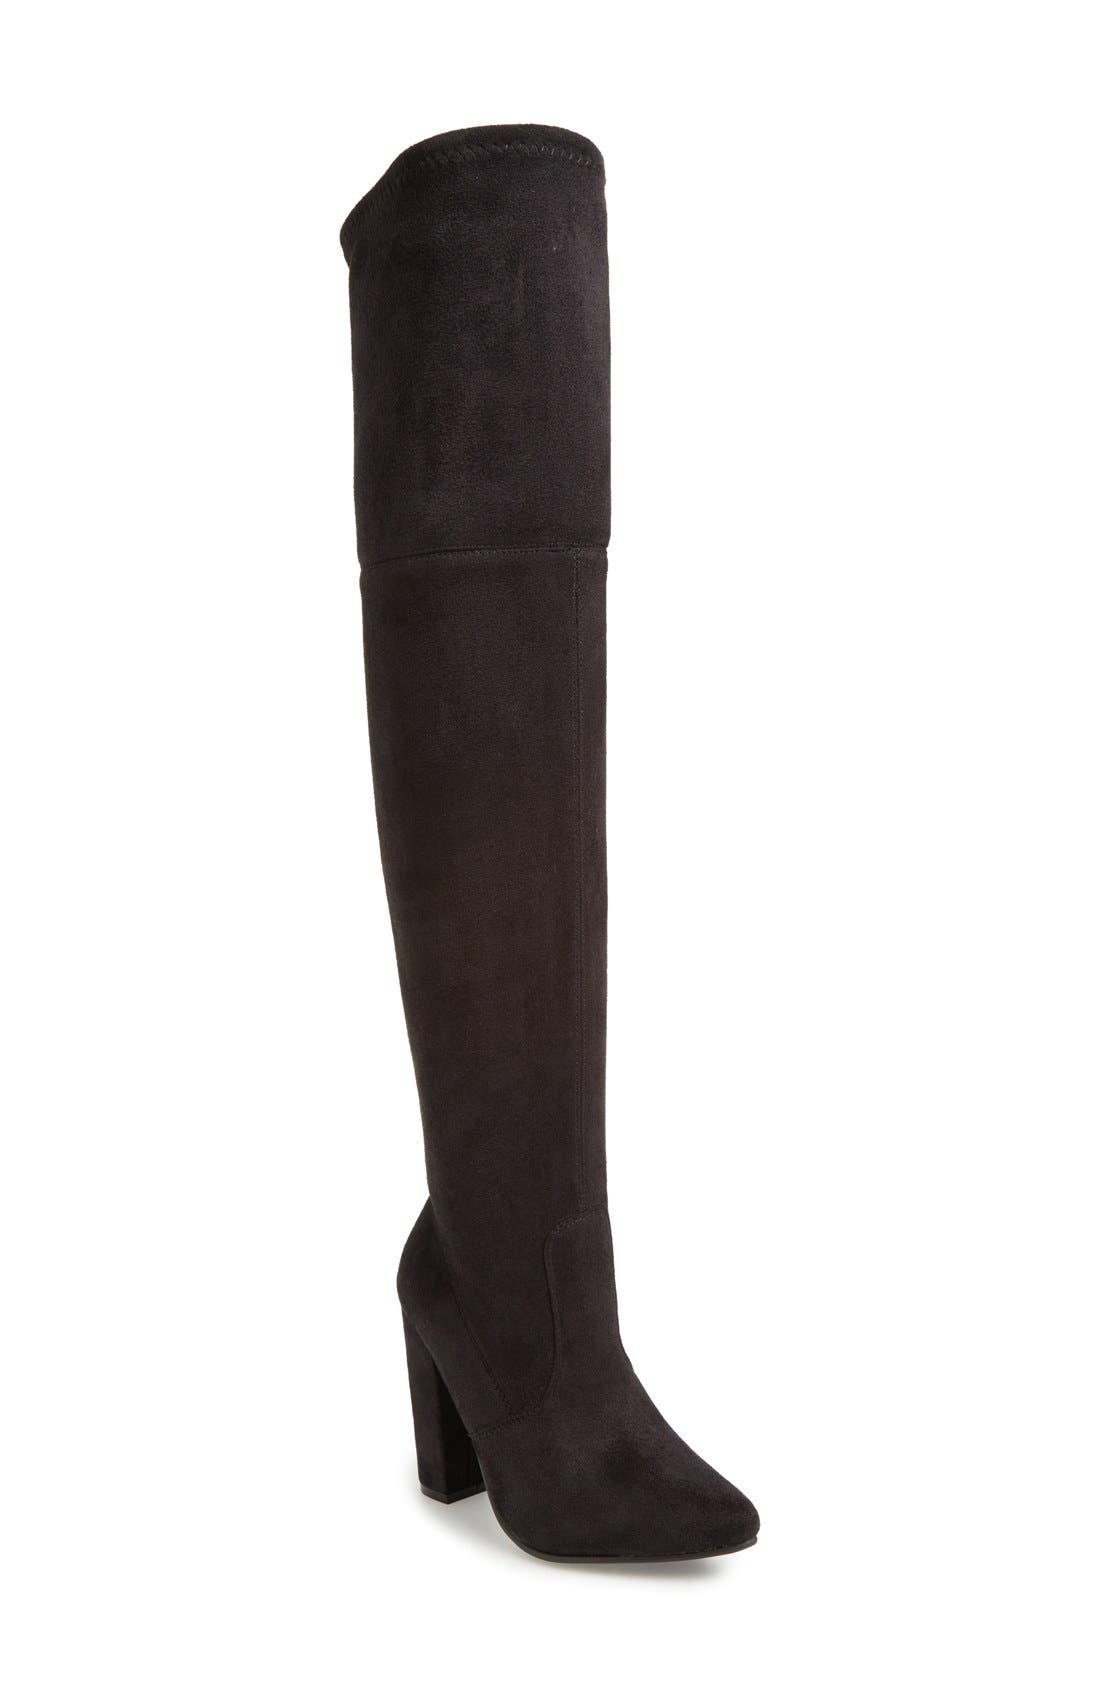 Alternate Image 1 Selected - Steve Madden 'Rocking' Over the Knee Boot (Women)